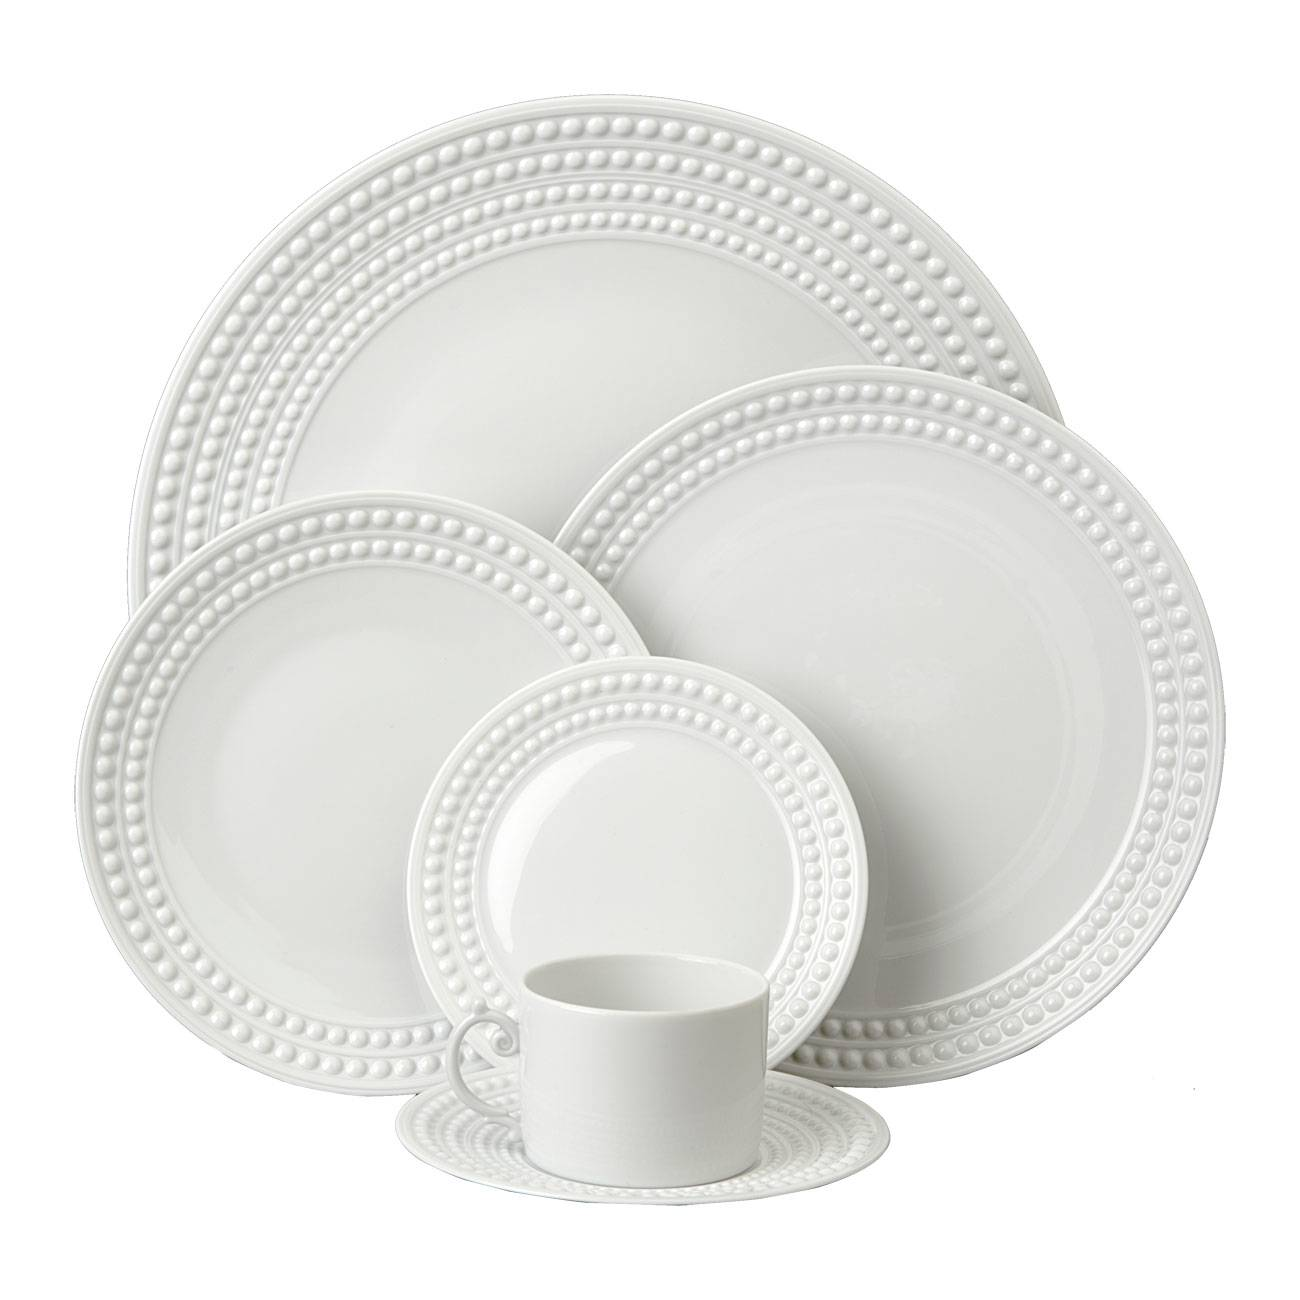 L'Objet Perlee White Collection